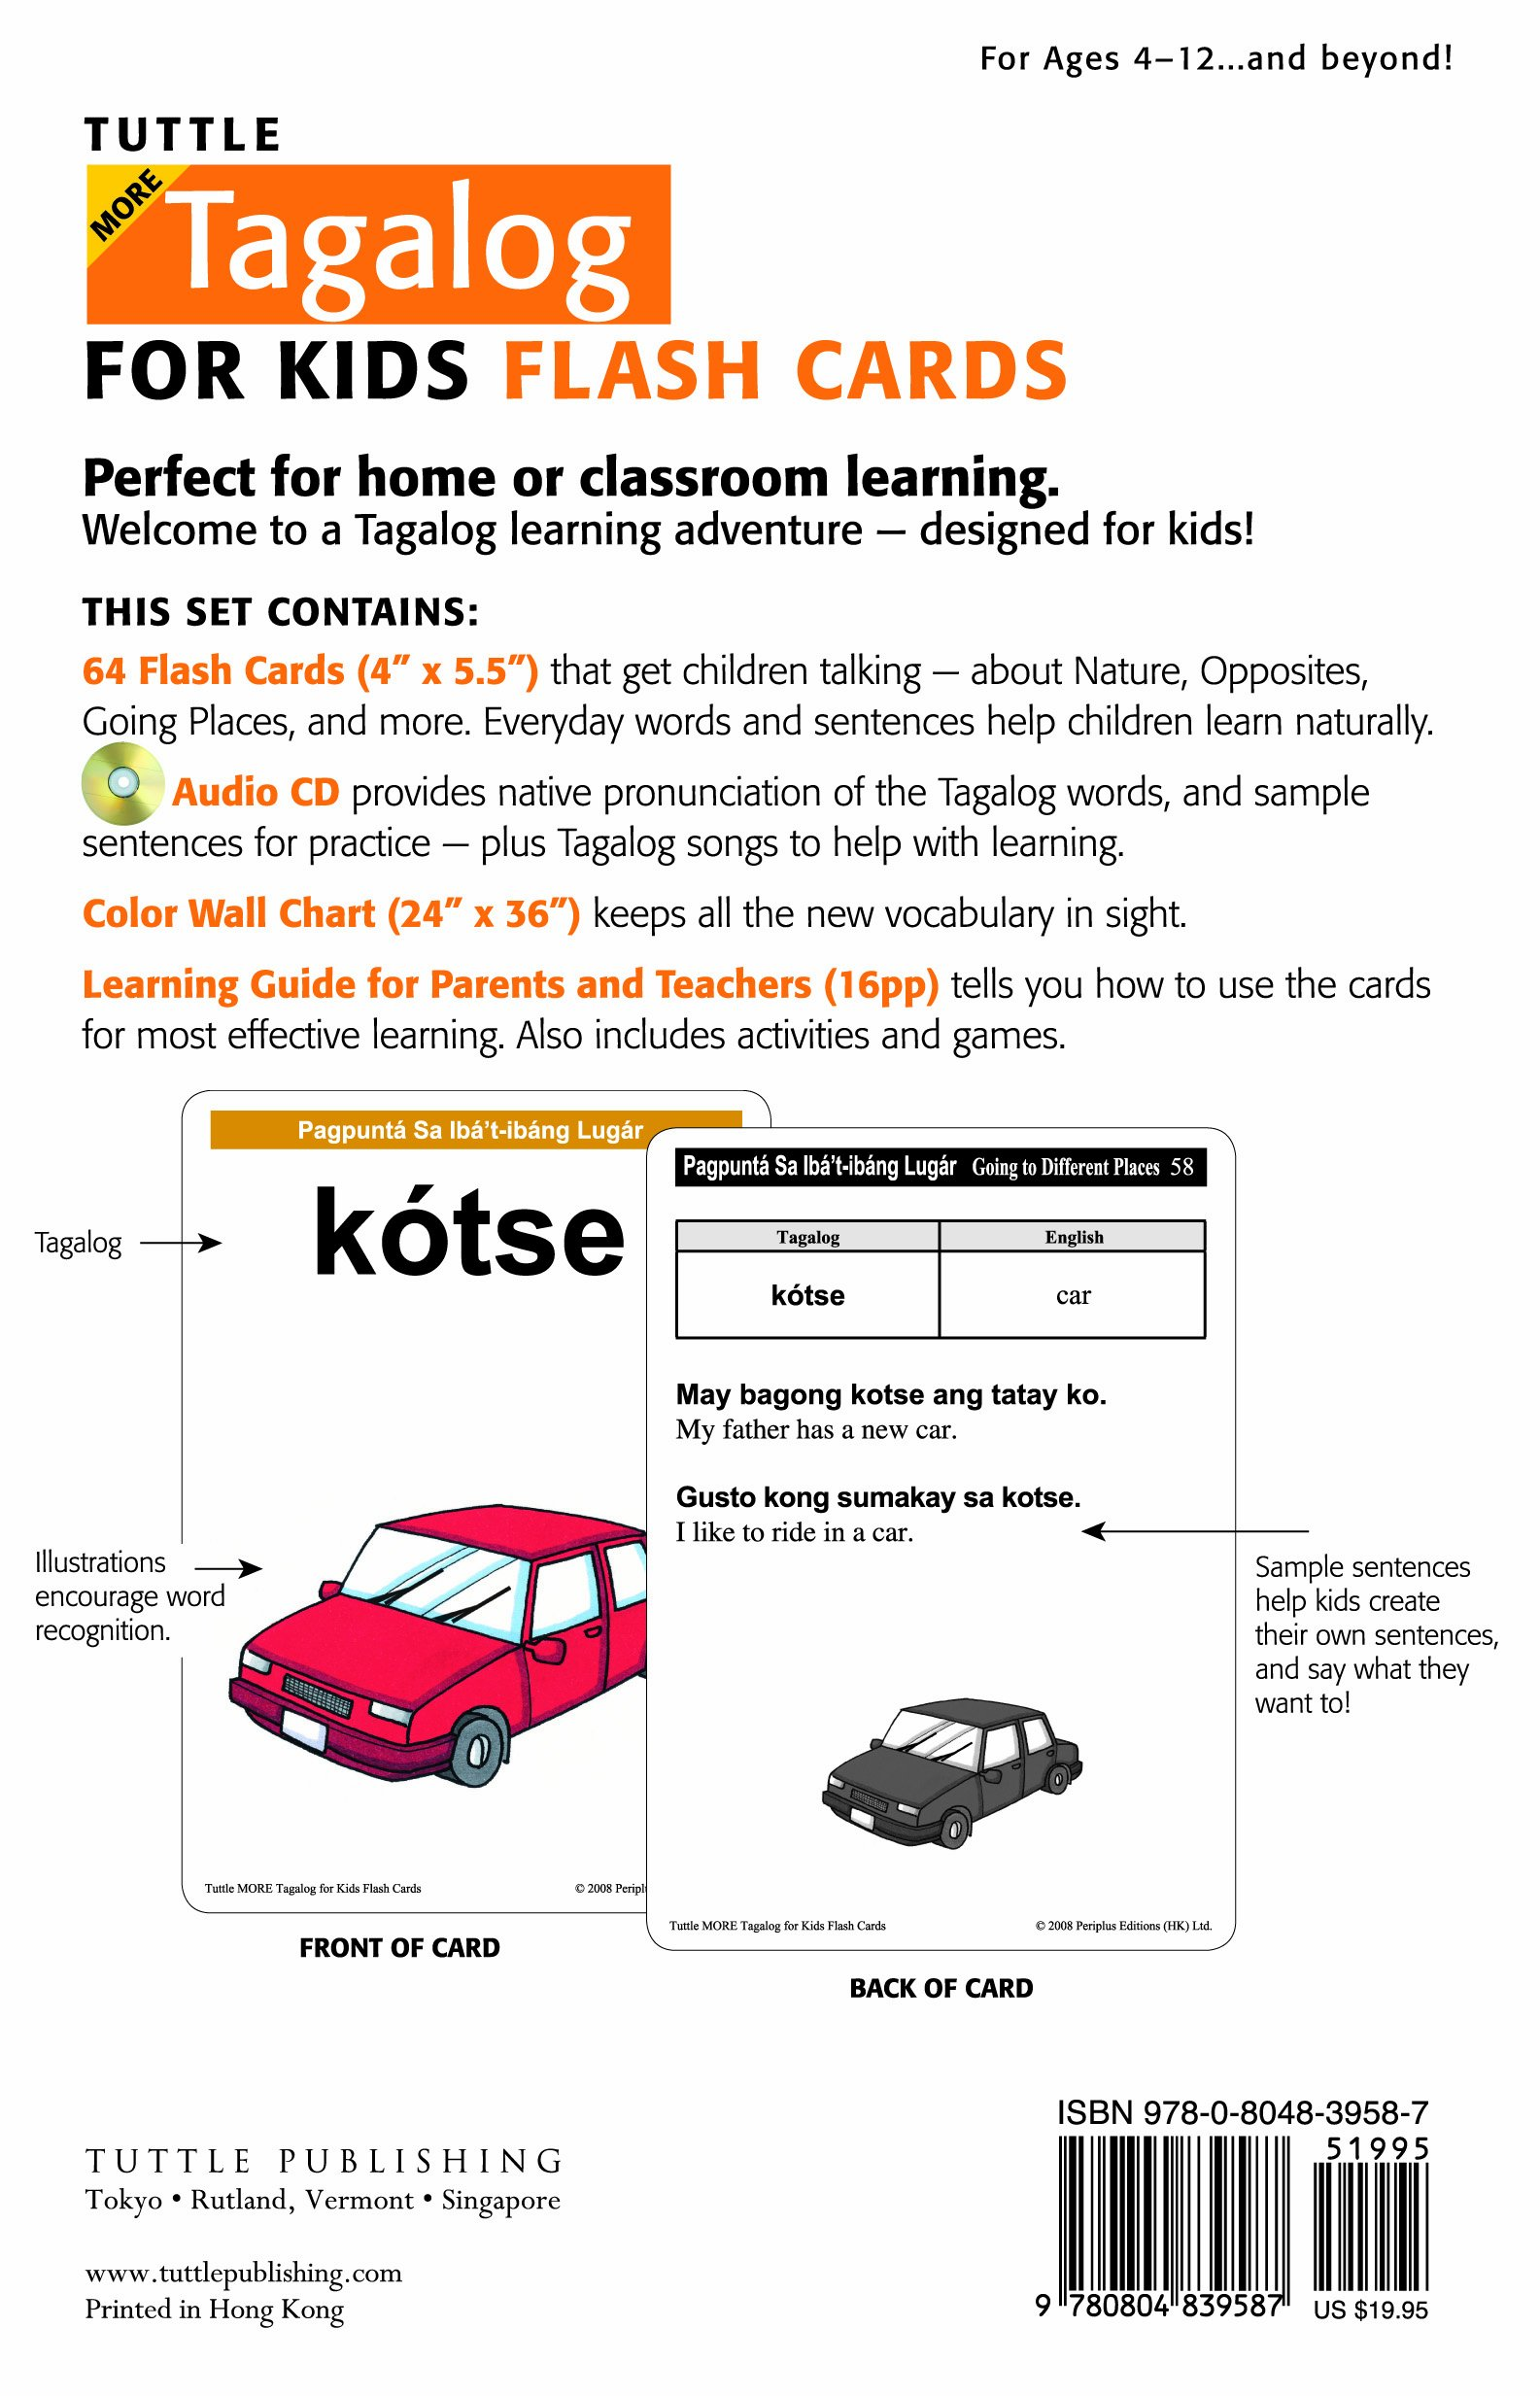 Tuttle more tagalog for kids flash cards kit includes 64 flash tuttle more tagalog for kids flash cards kit includes 64 flash cards audio cd wall chart learning guide tuttle flash cards imelda fines gasmen ccuart Image collections